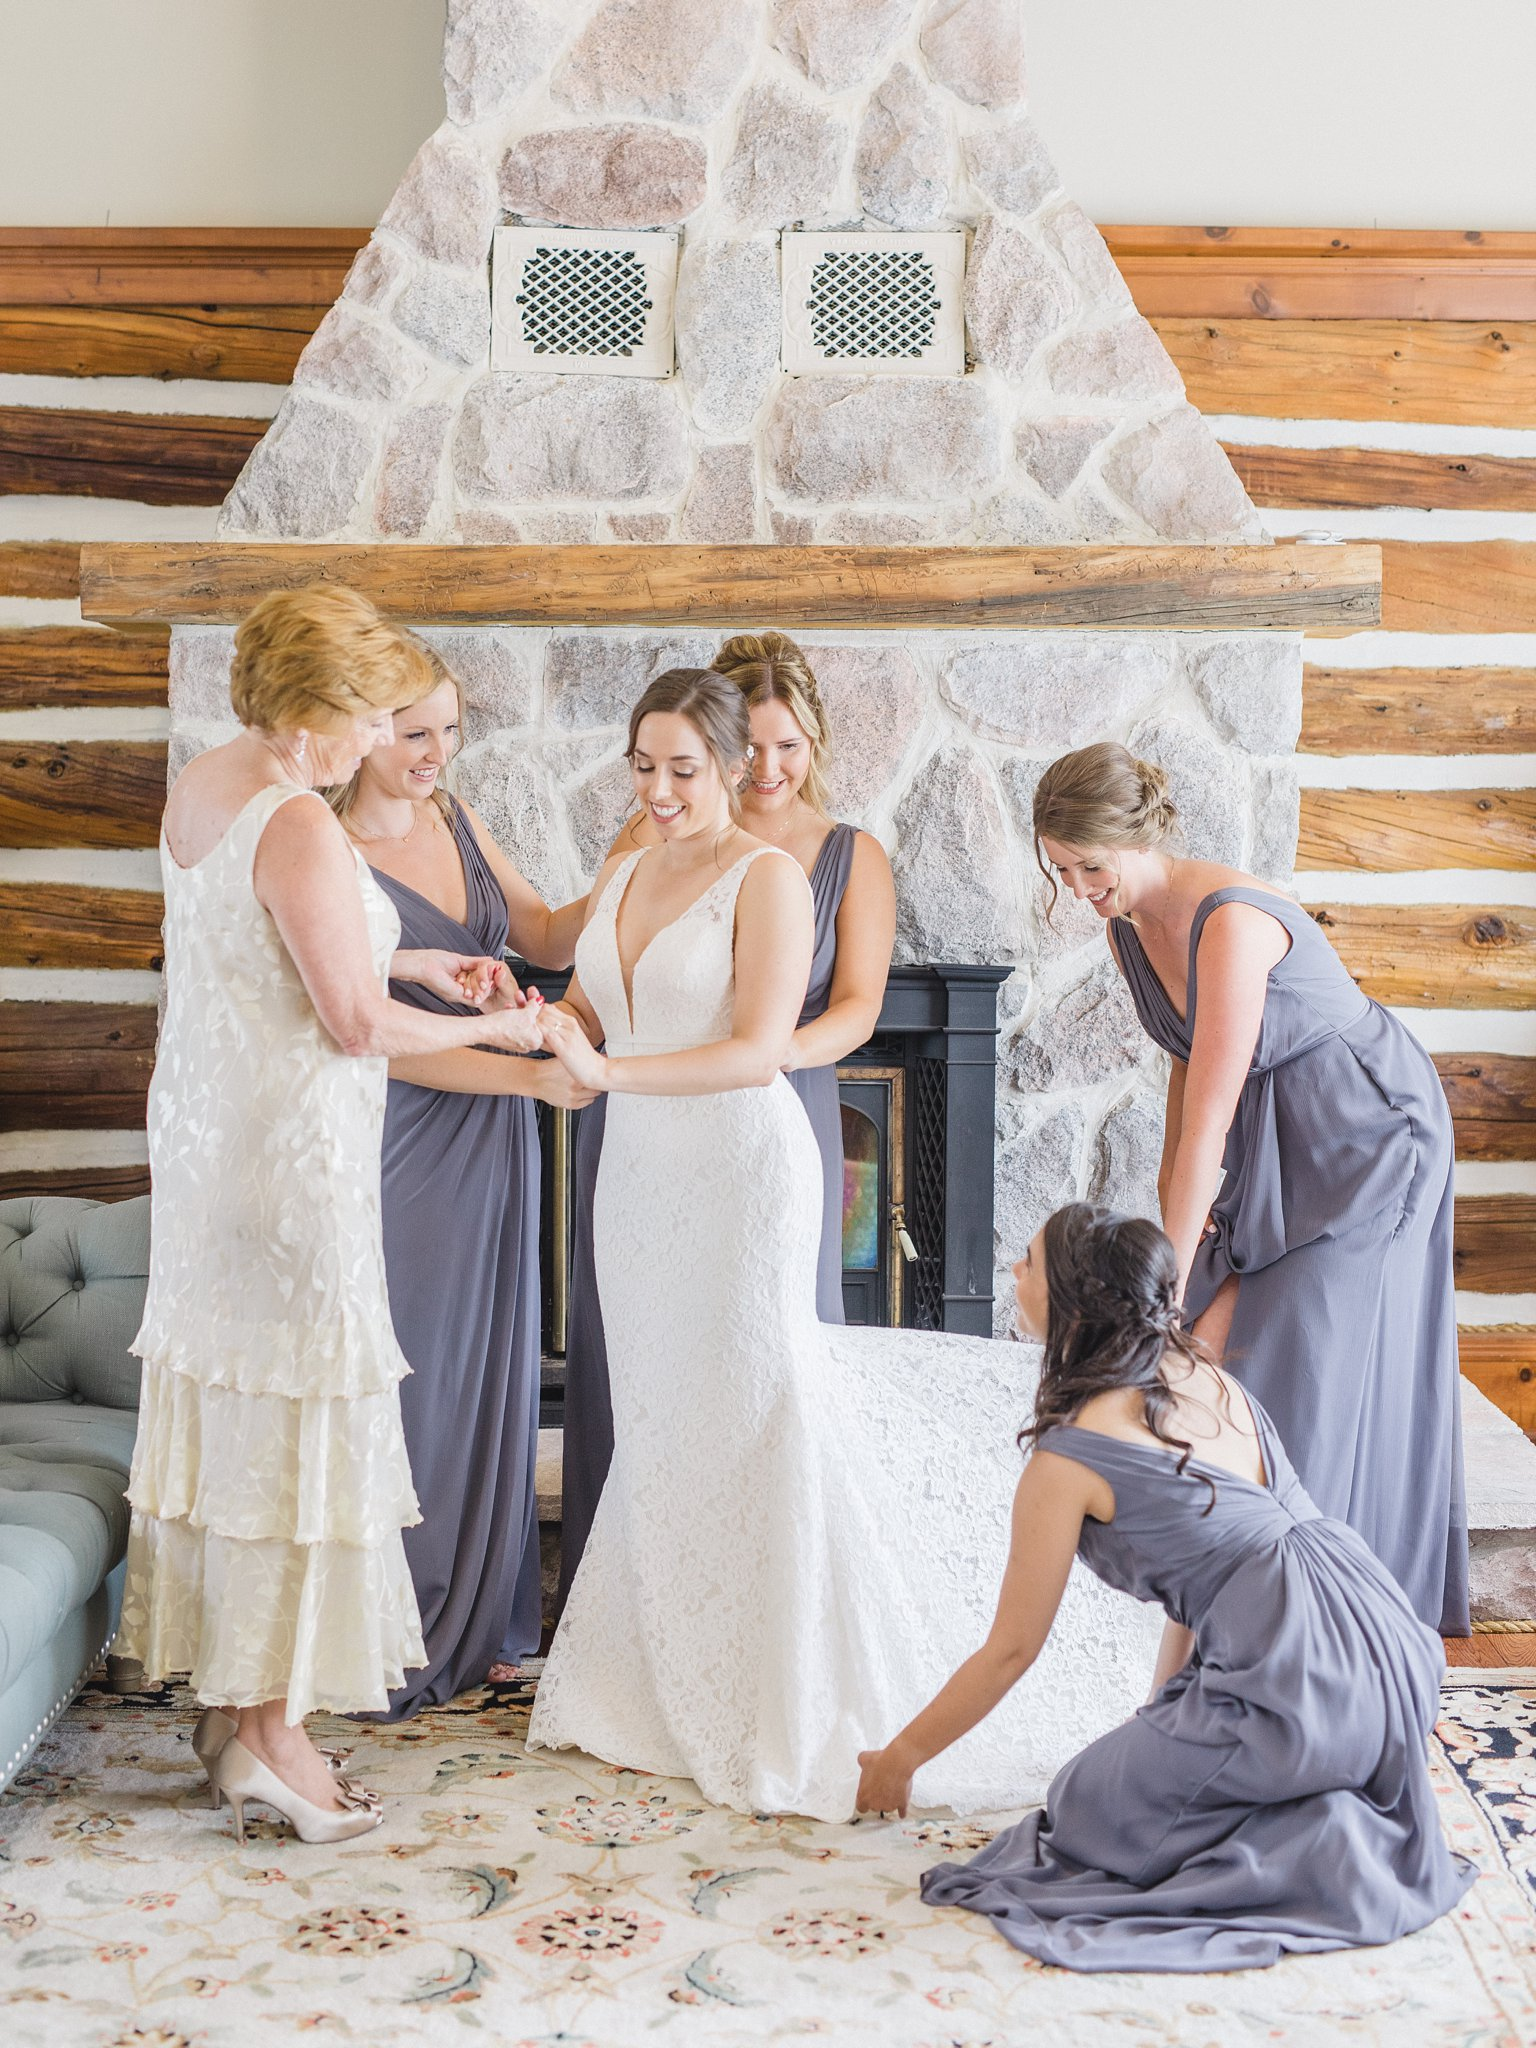 Mauve bridesmaid dress David's Bridal married at Stonefields, Amy Pinder Photography